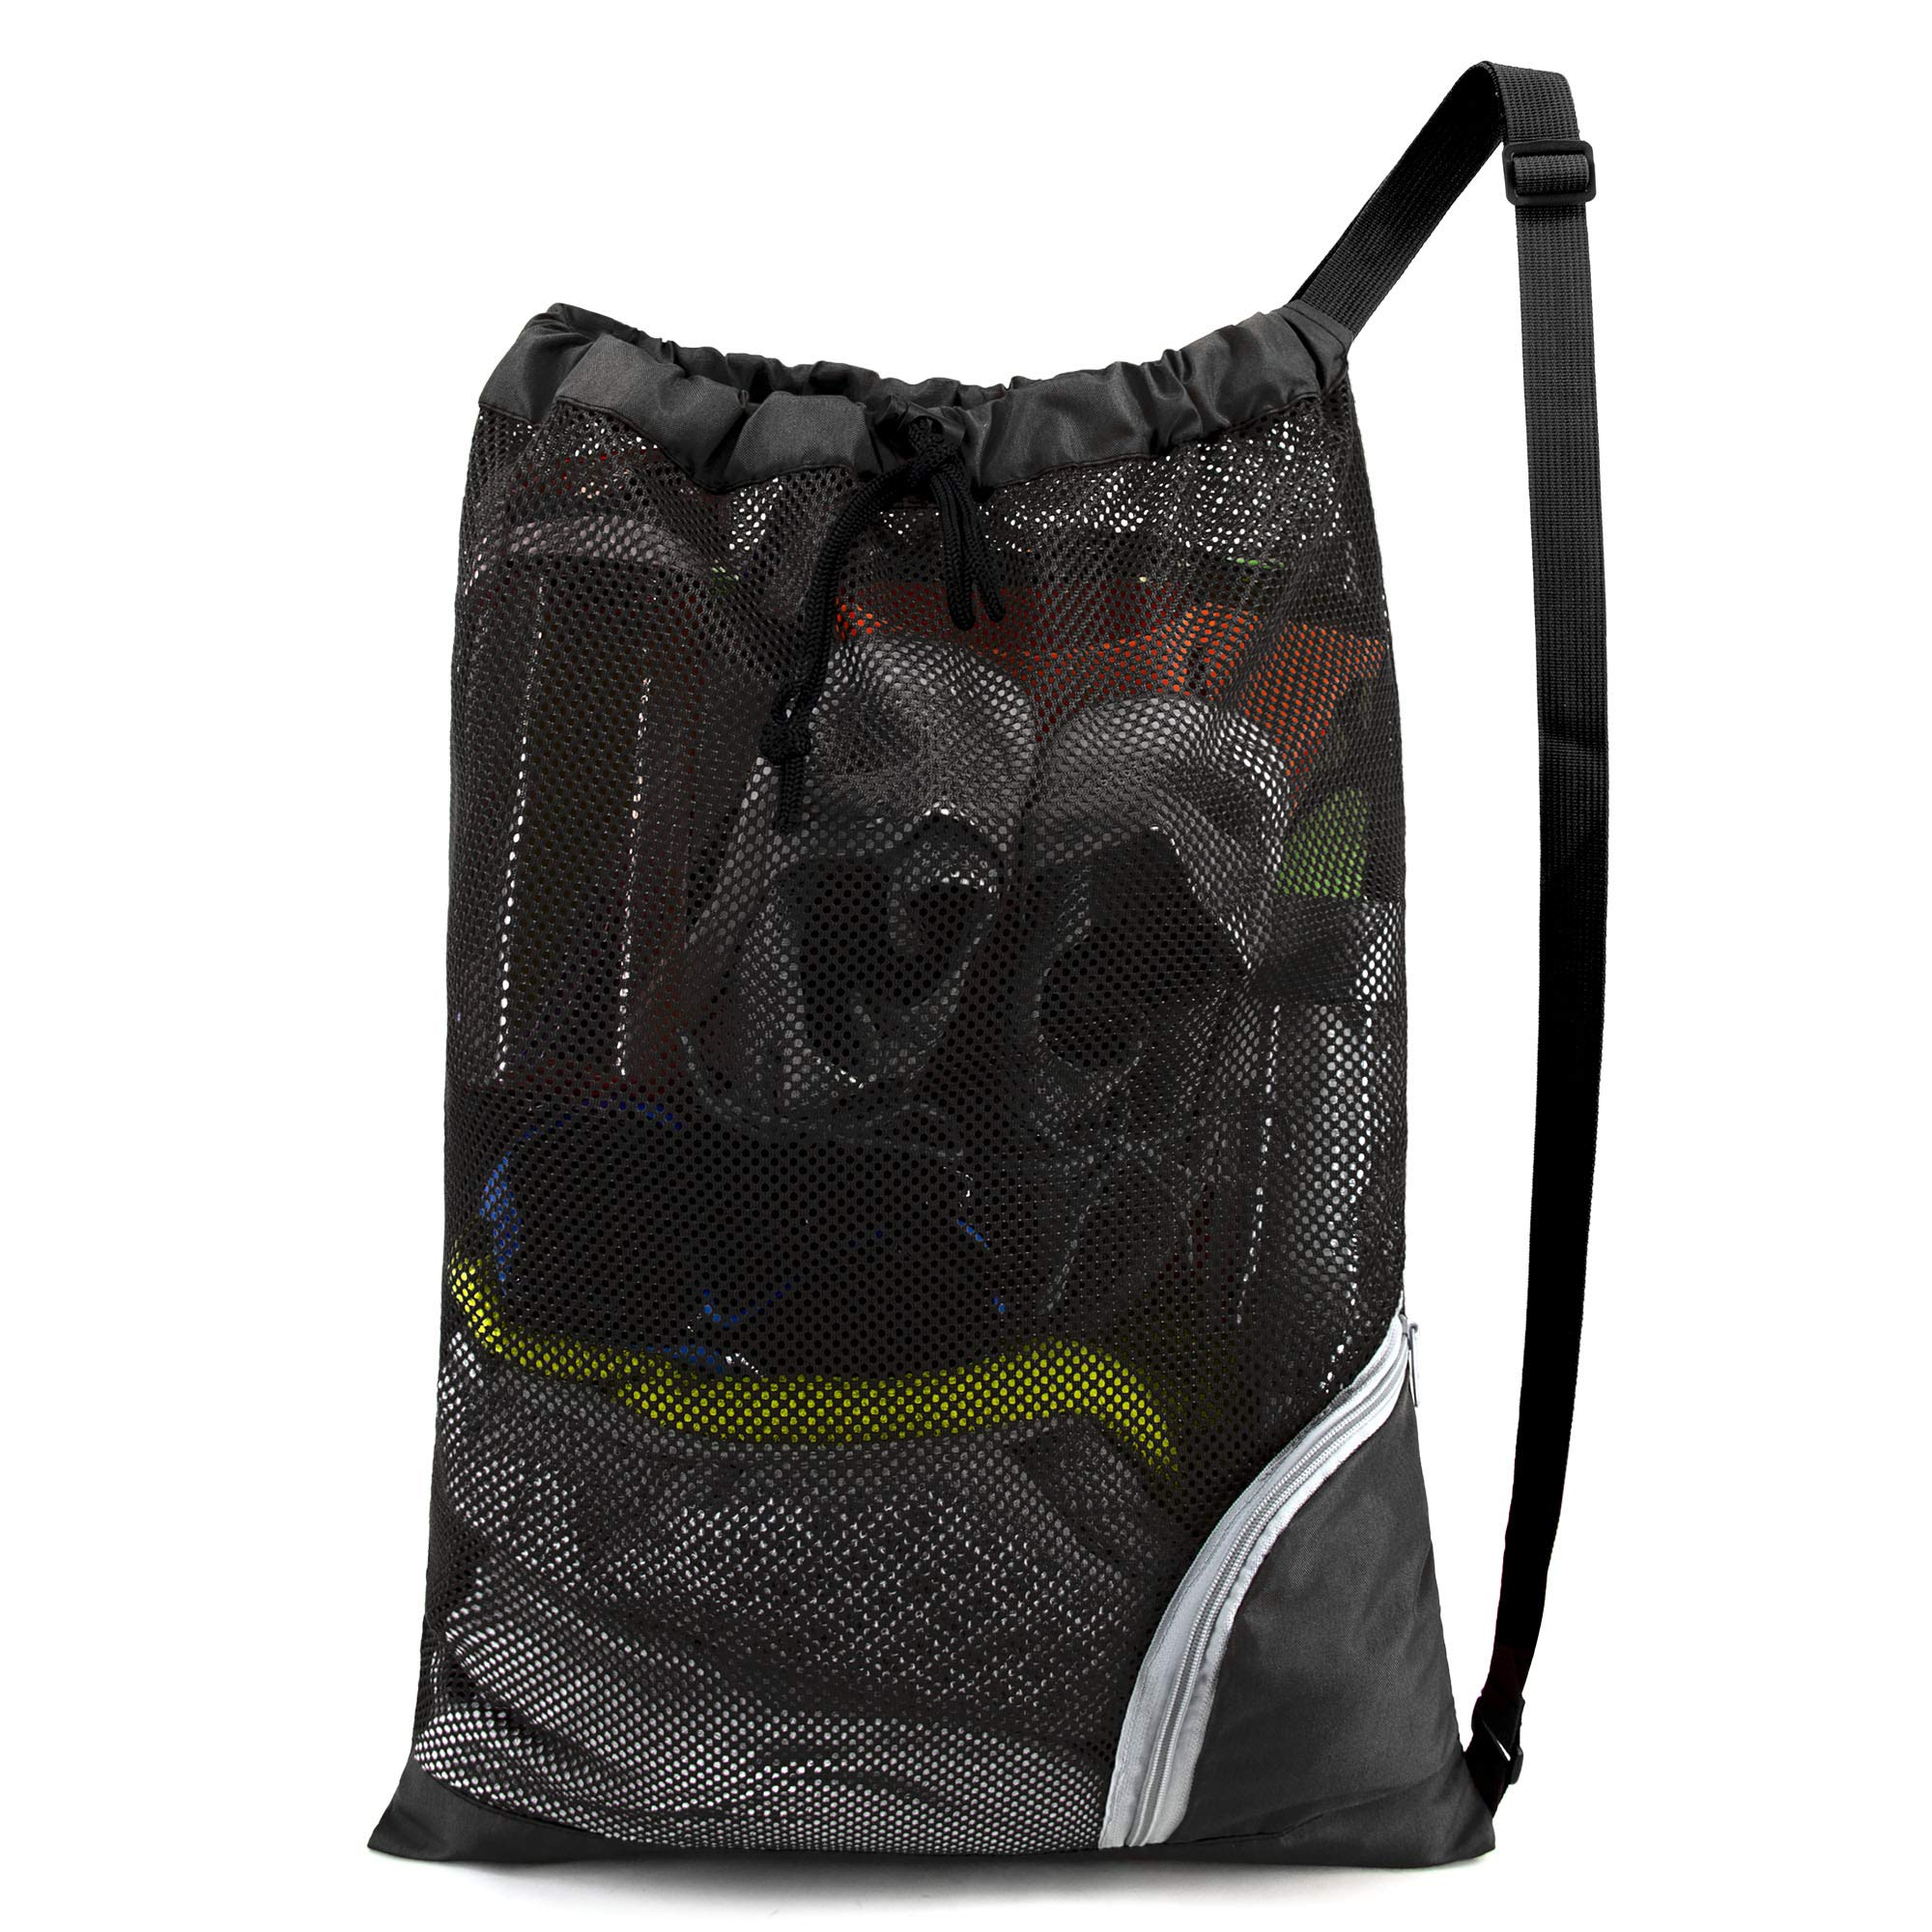 Mesh Drawstring Bag Swimming Pool Backpack for Sports Beach Travel Gym Workout